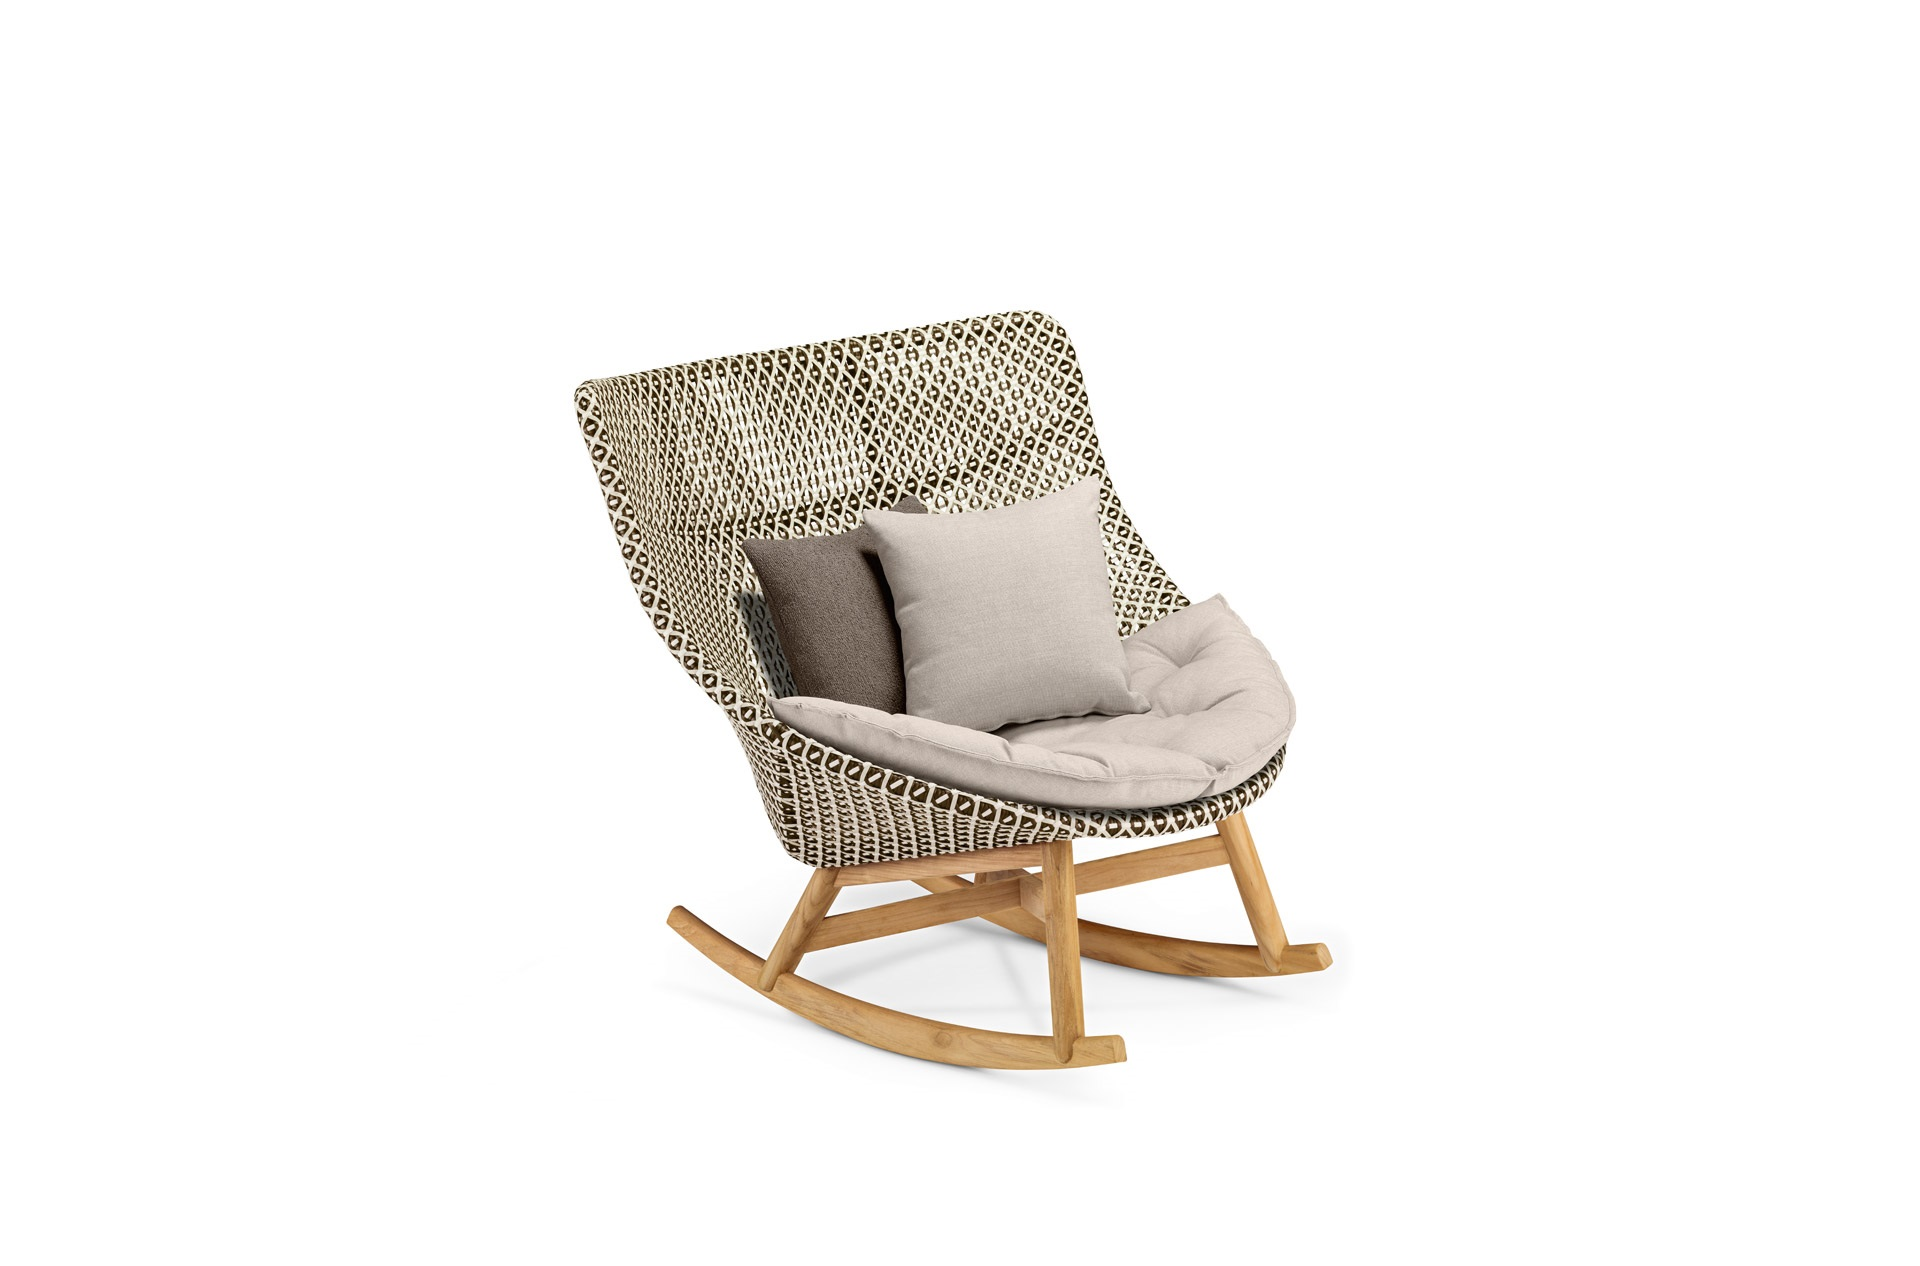 DEDON-Mbrace-Rocking-chair-decocushion-pepper